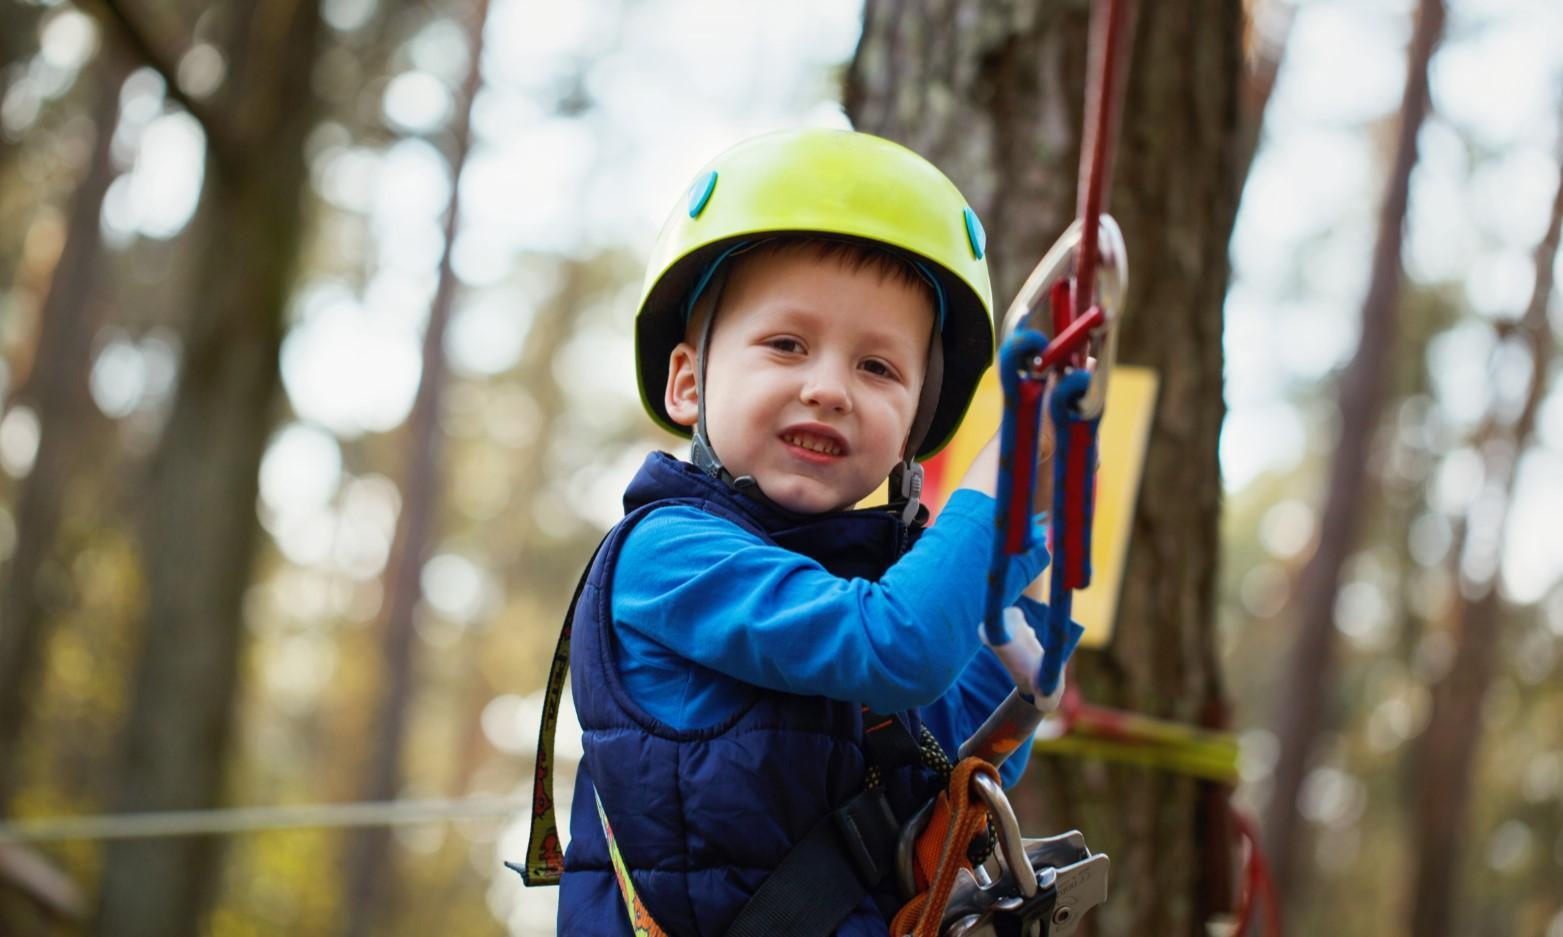 Treetop Adventure Climbing Sessions at Colby